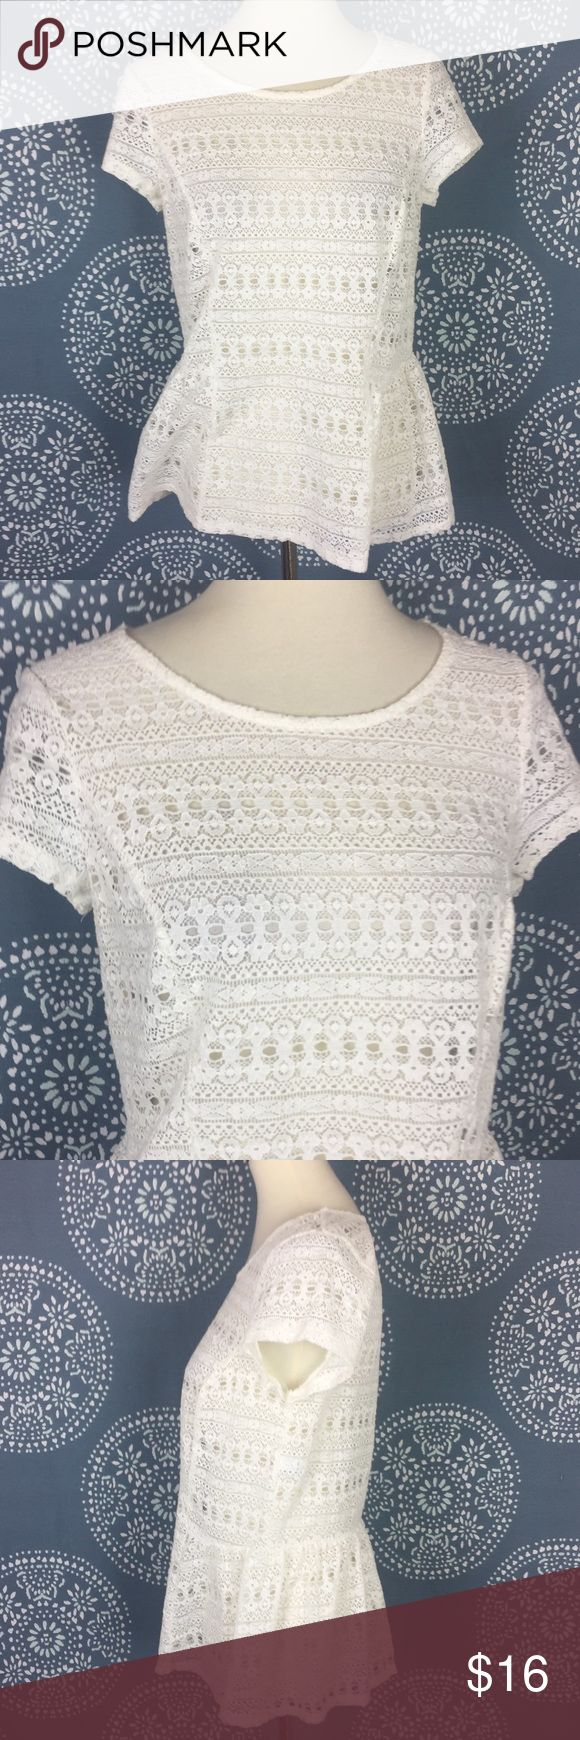 "LC Lauren Conrad White Lace Peplum Top Pretty Lauren Conrad white lace top with a peplum bottom. T has a crew neck and cap sleeves. Lovely top in great condition.  17.5"" armpit to armpit 23.5"" long LC Lauren Conrad Tops"